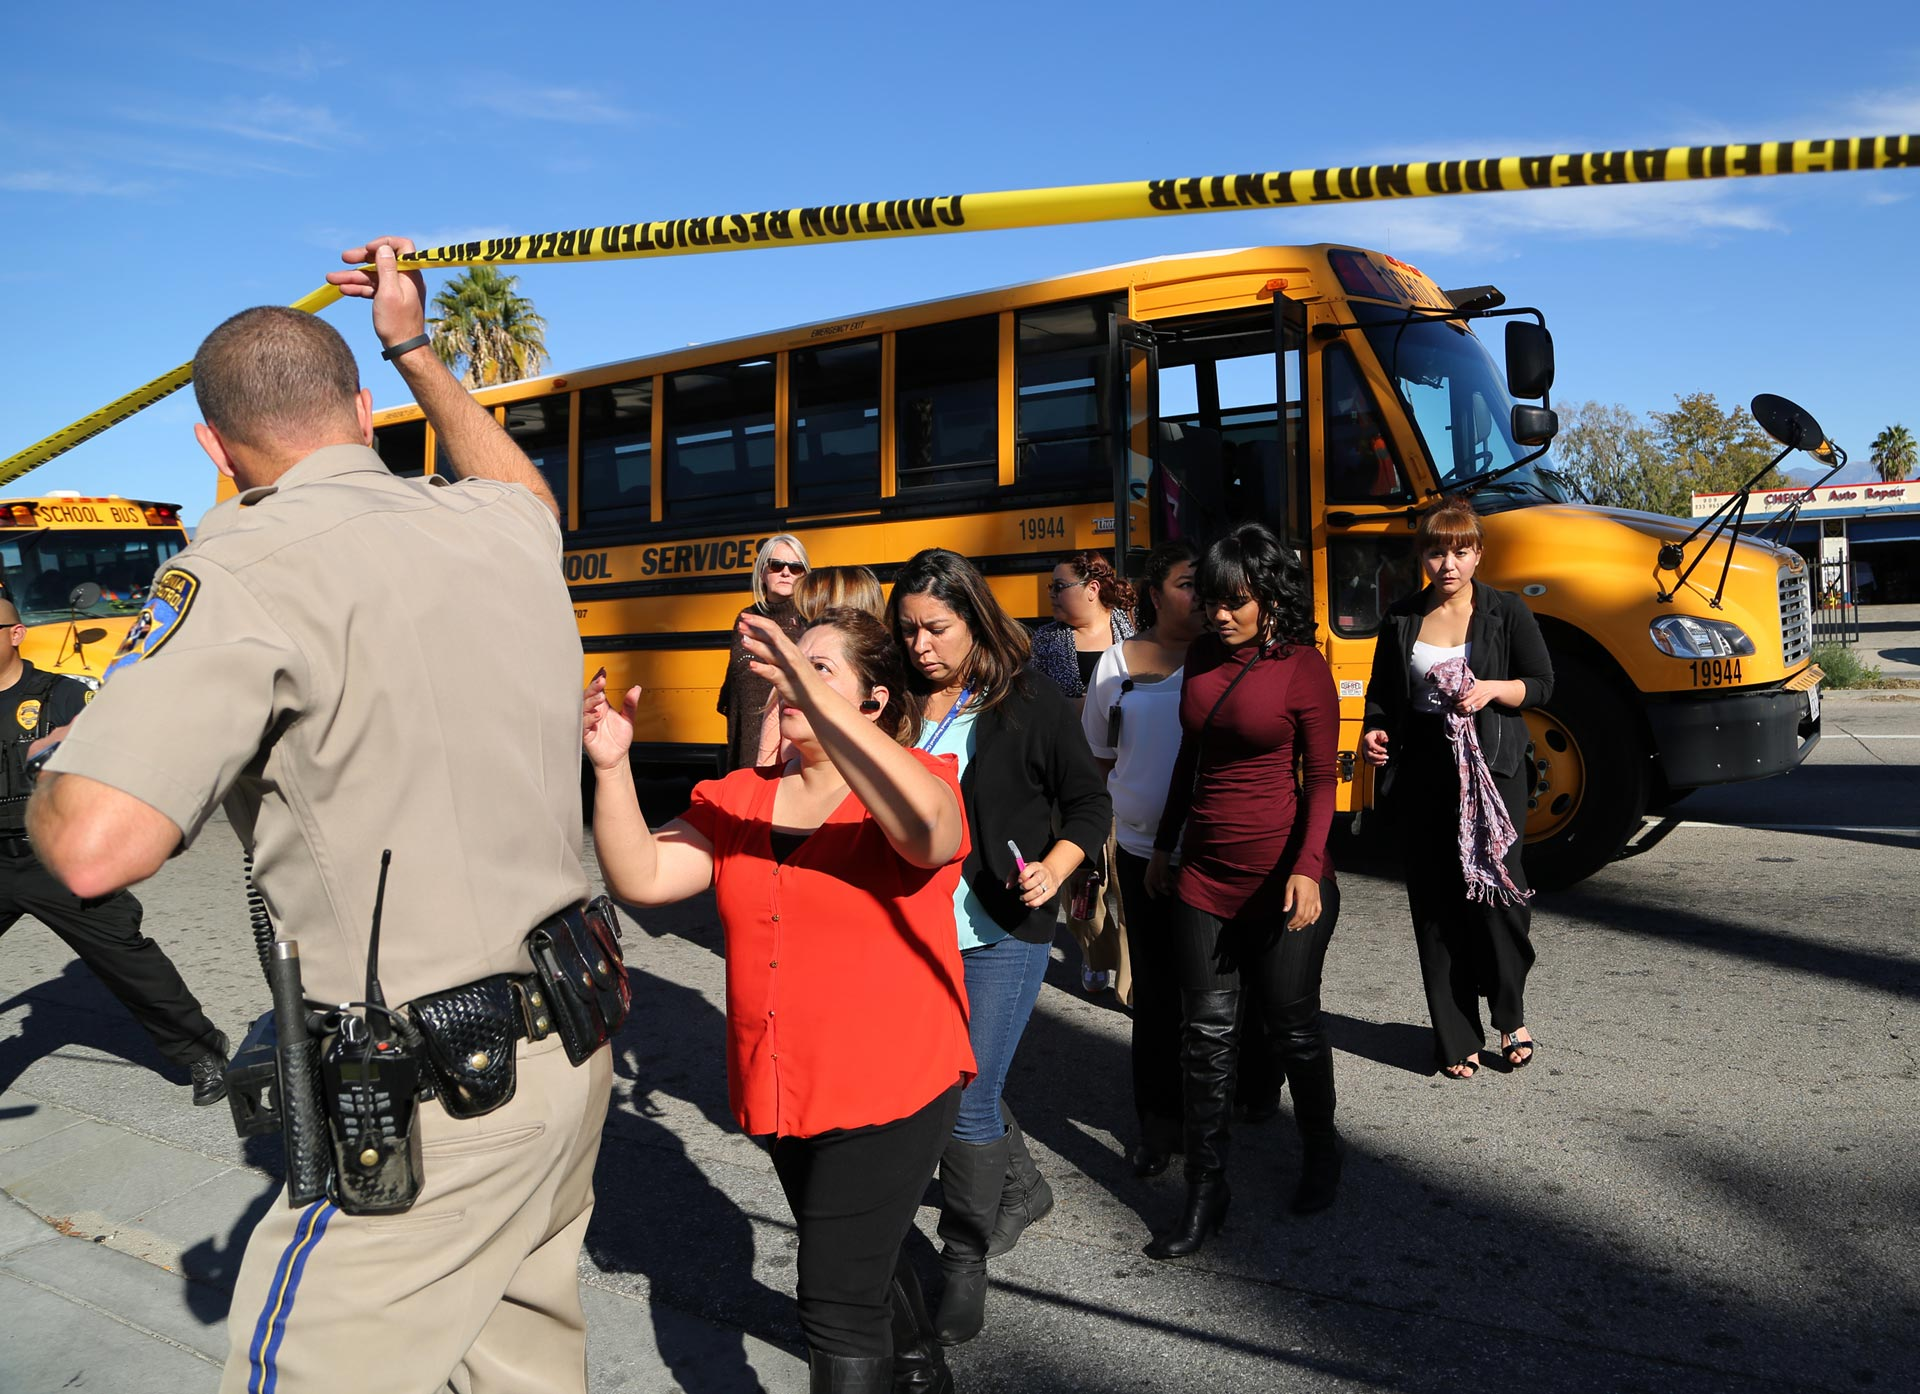 Employees and others are evacuated by bus from the site of a mass shooting at the Inland Regional Center in San Bernardino.